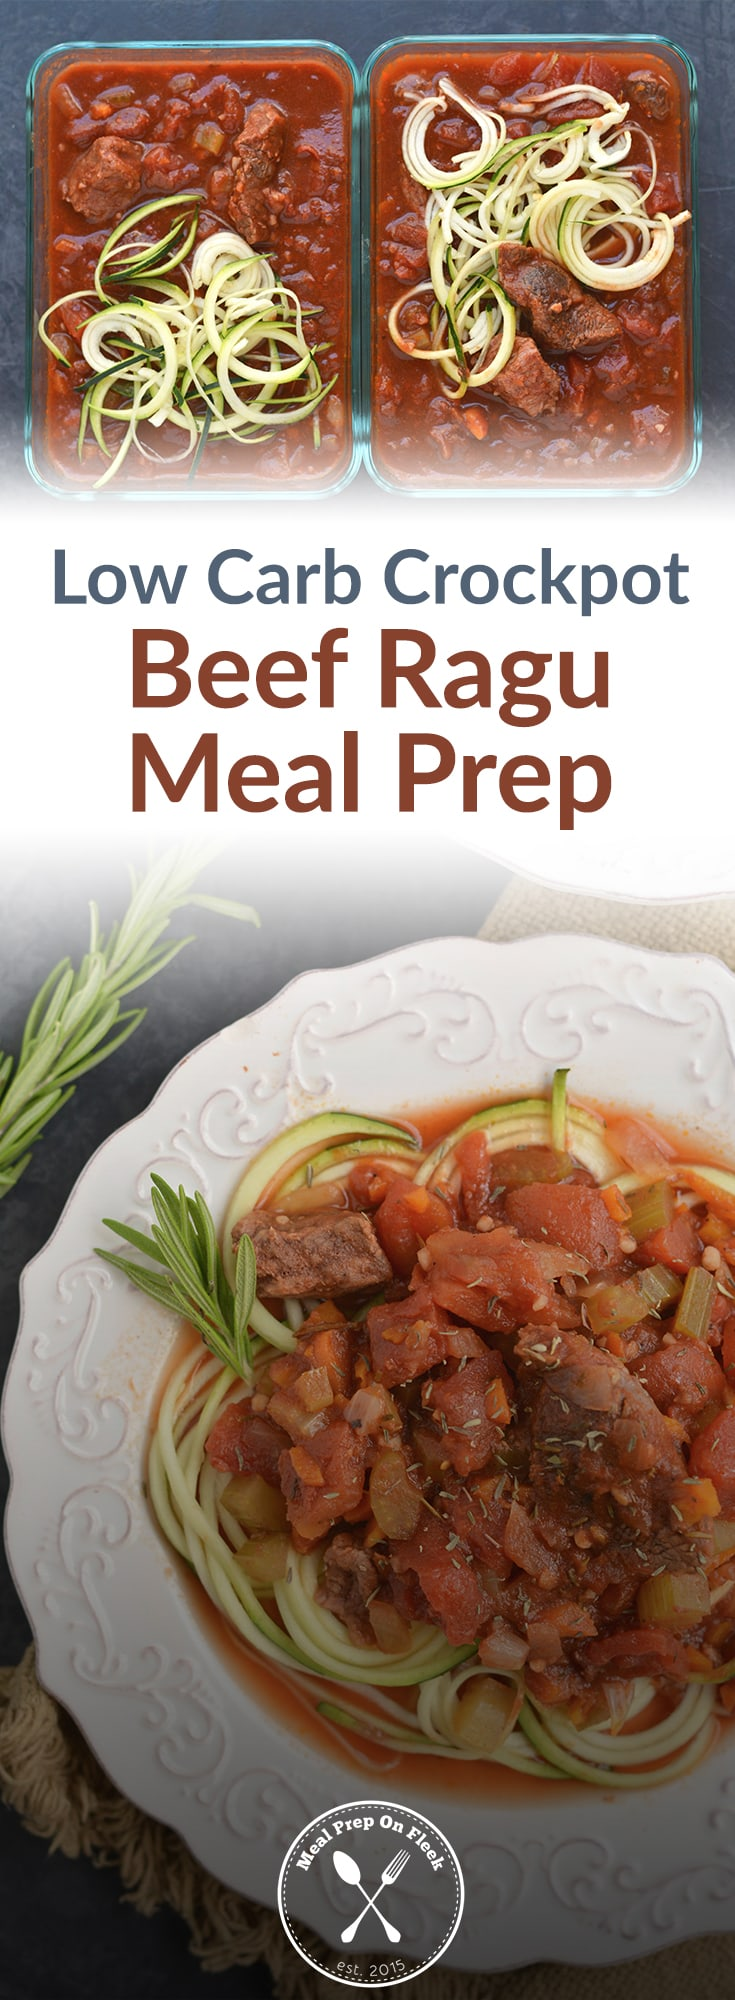 Low Carb Crockpot Beef Ragu Meal Prep